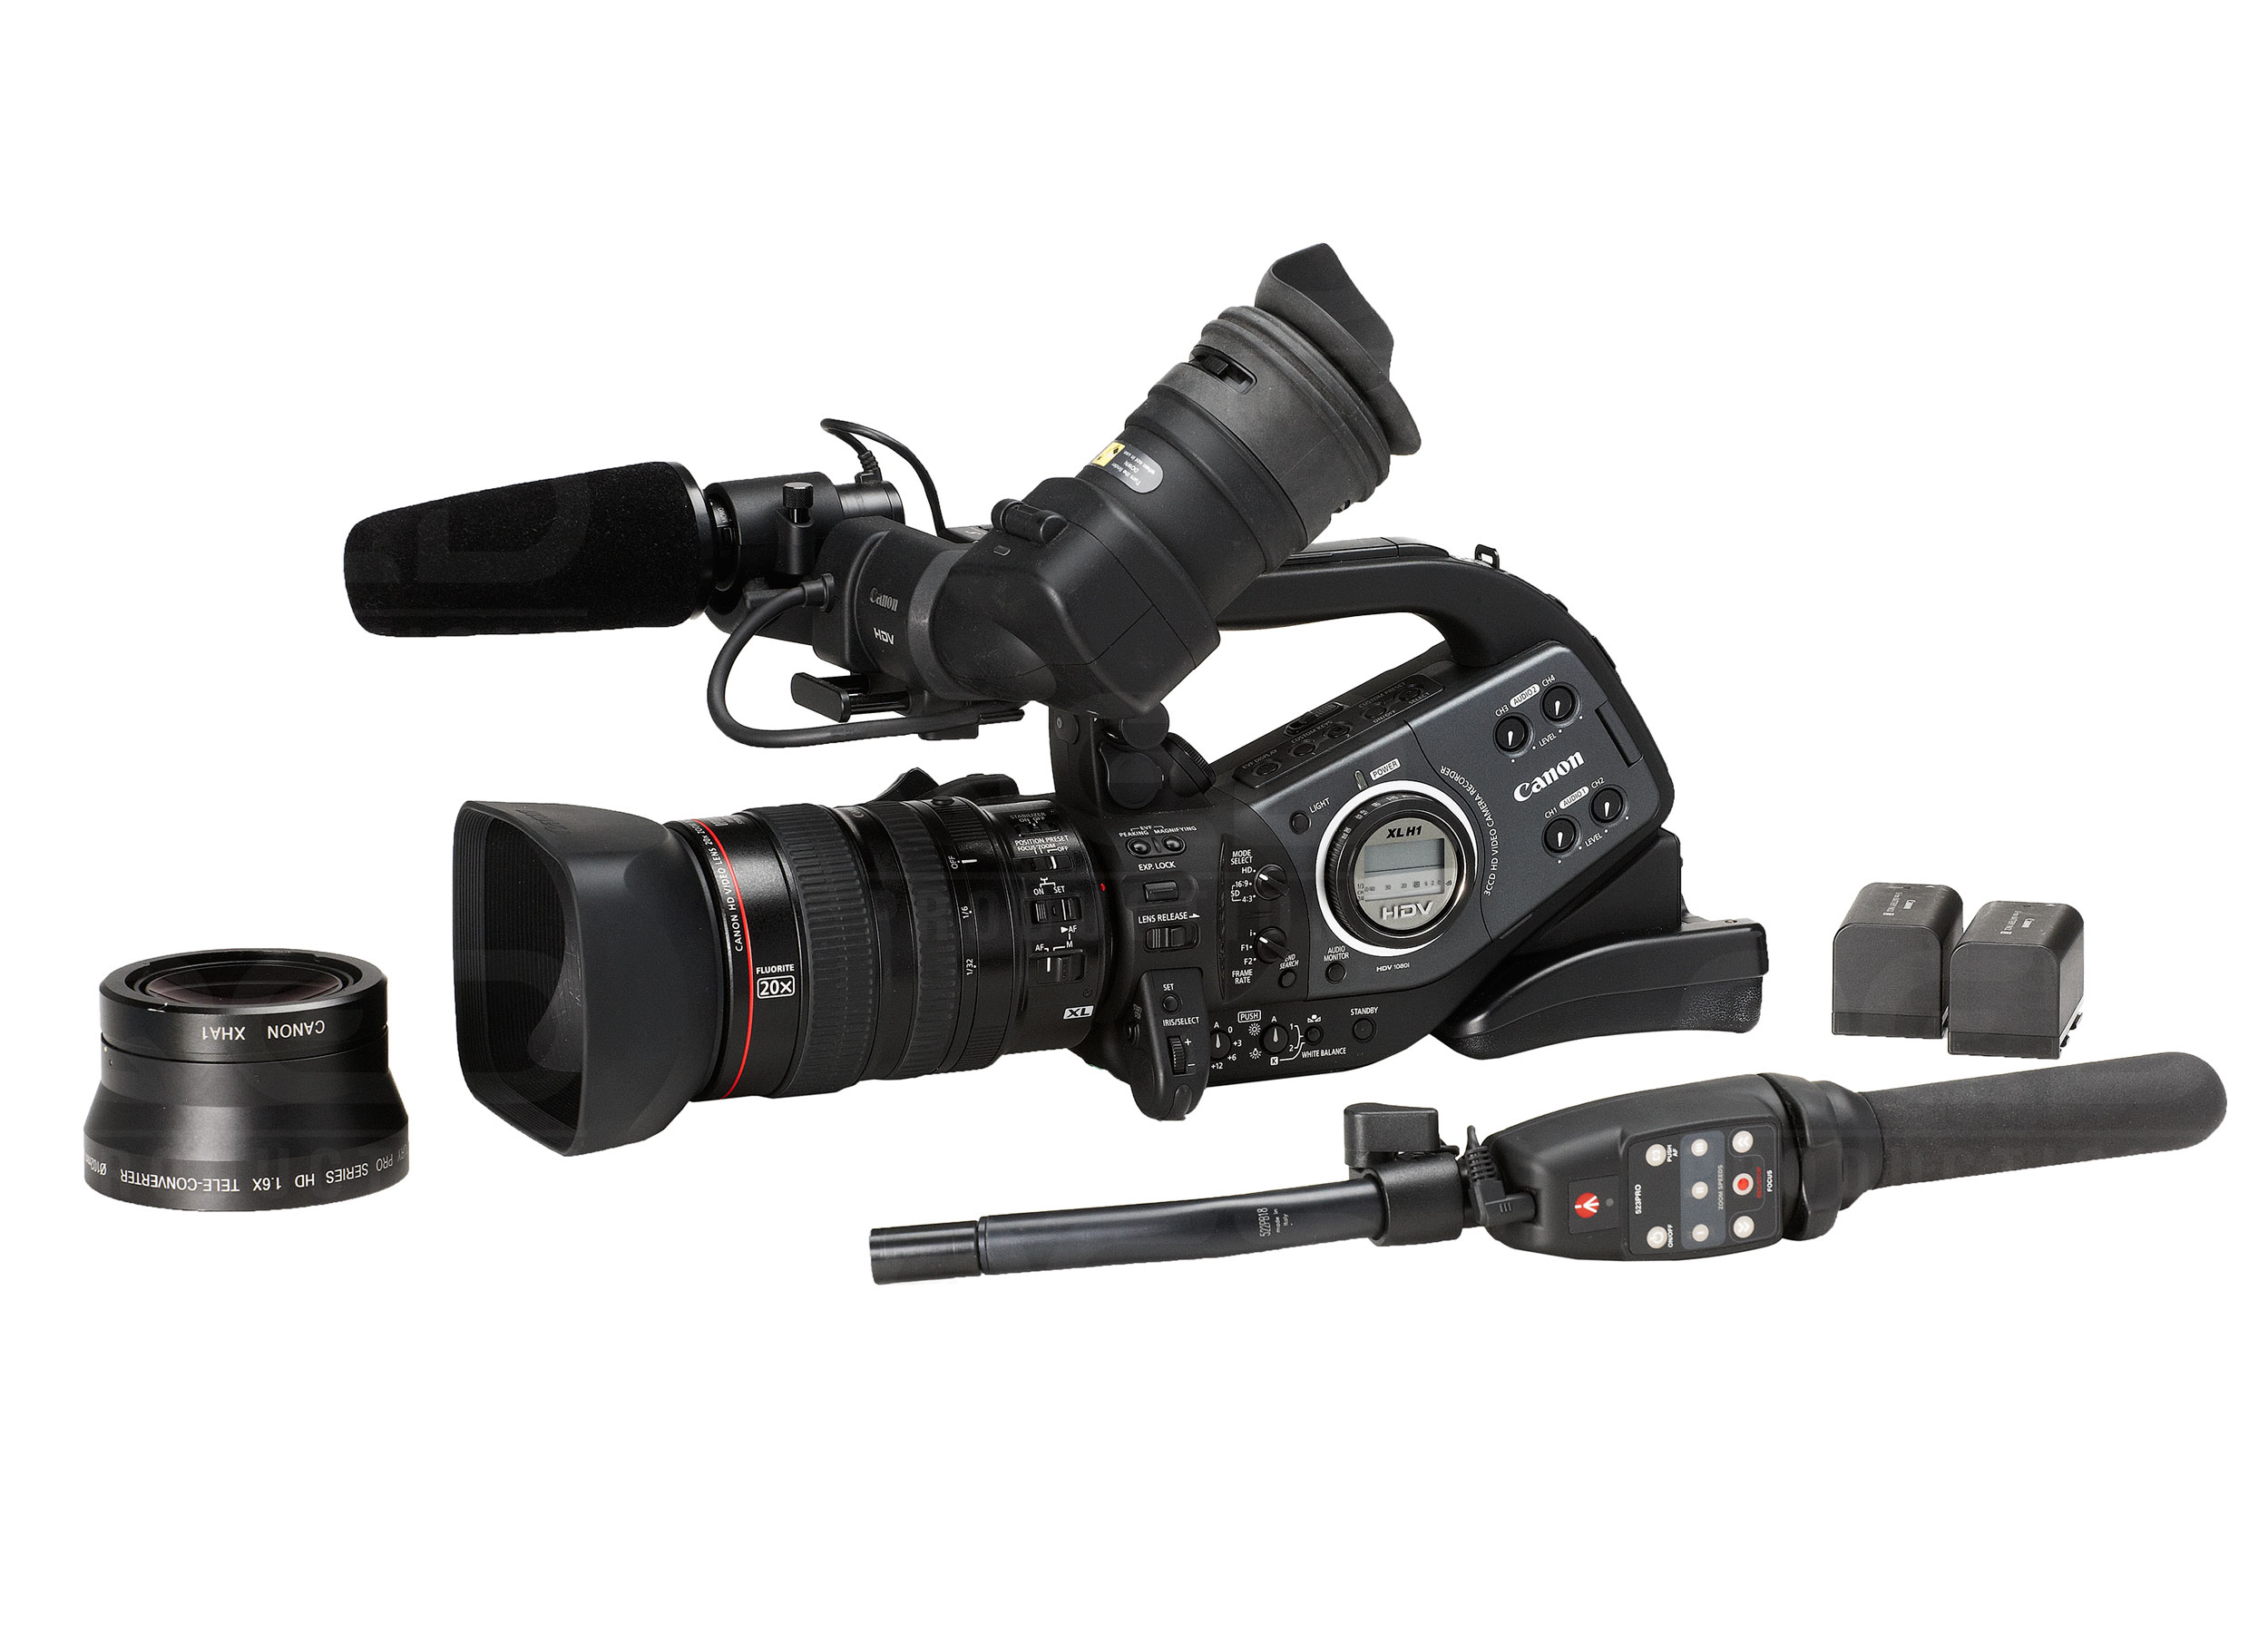 qed productions equipment canon xl h1 rh qed productions com Canon XL H1 Manual Canon XL Professional